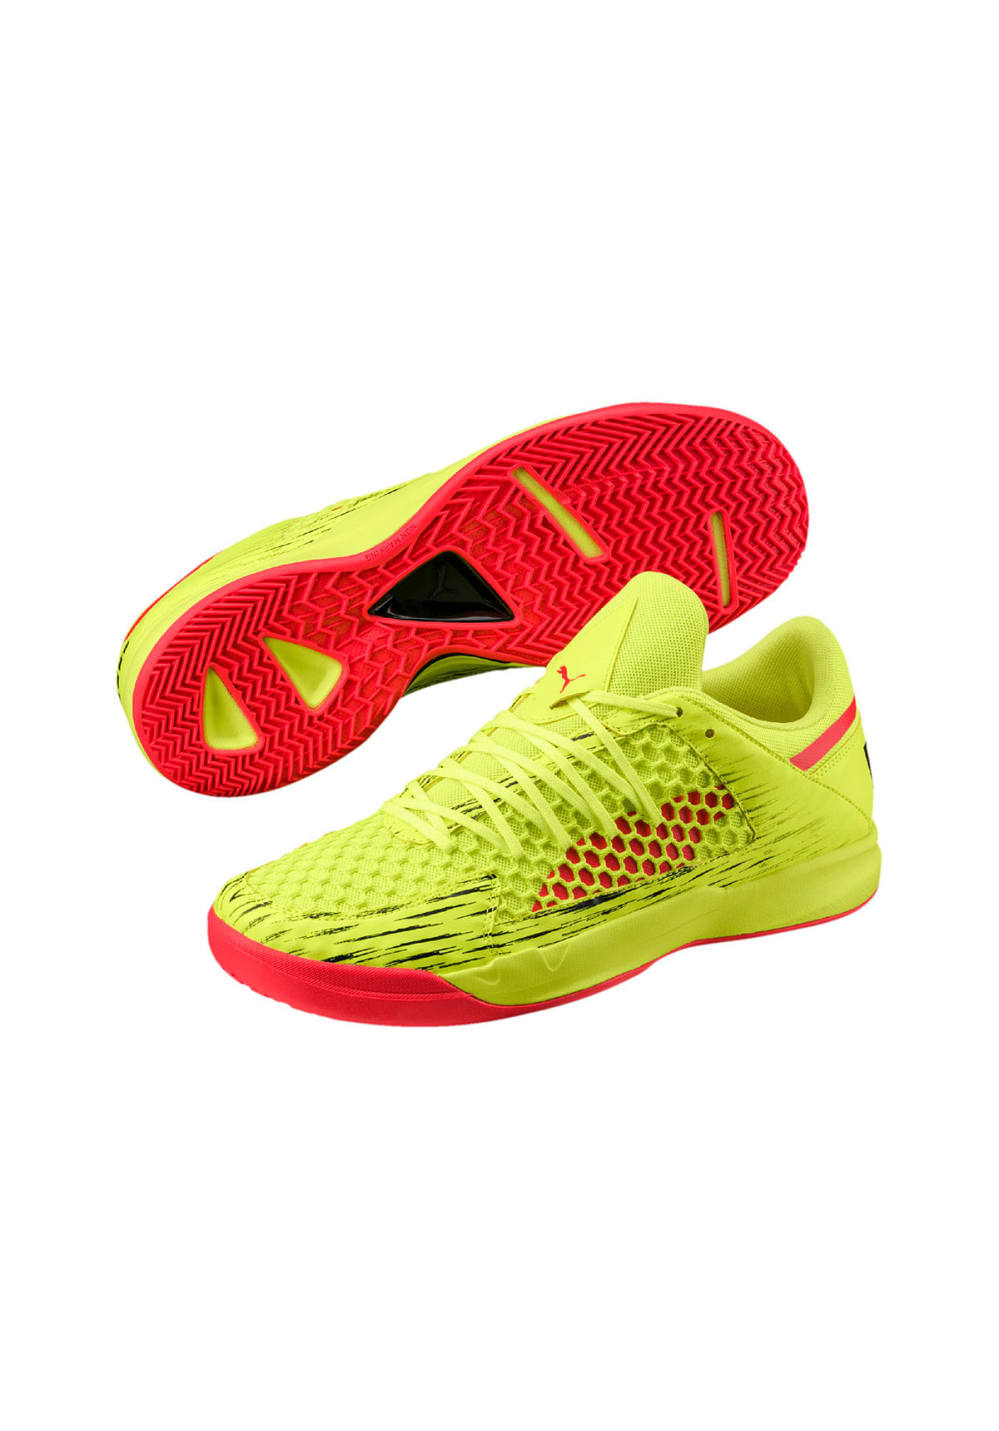 newest 62c39 90ac2 ... Puma Evospeed Indoor Netfit Euro 4 - Football Shoes - Yellow. Back to  Overview. -60%